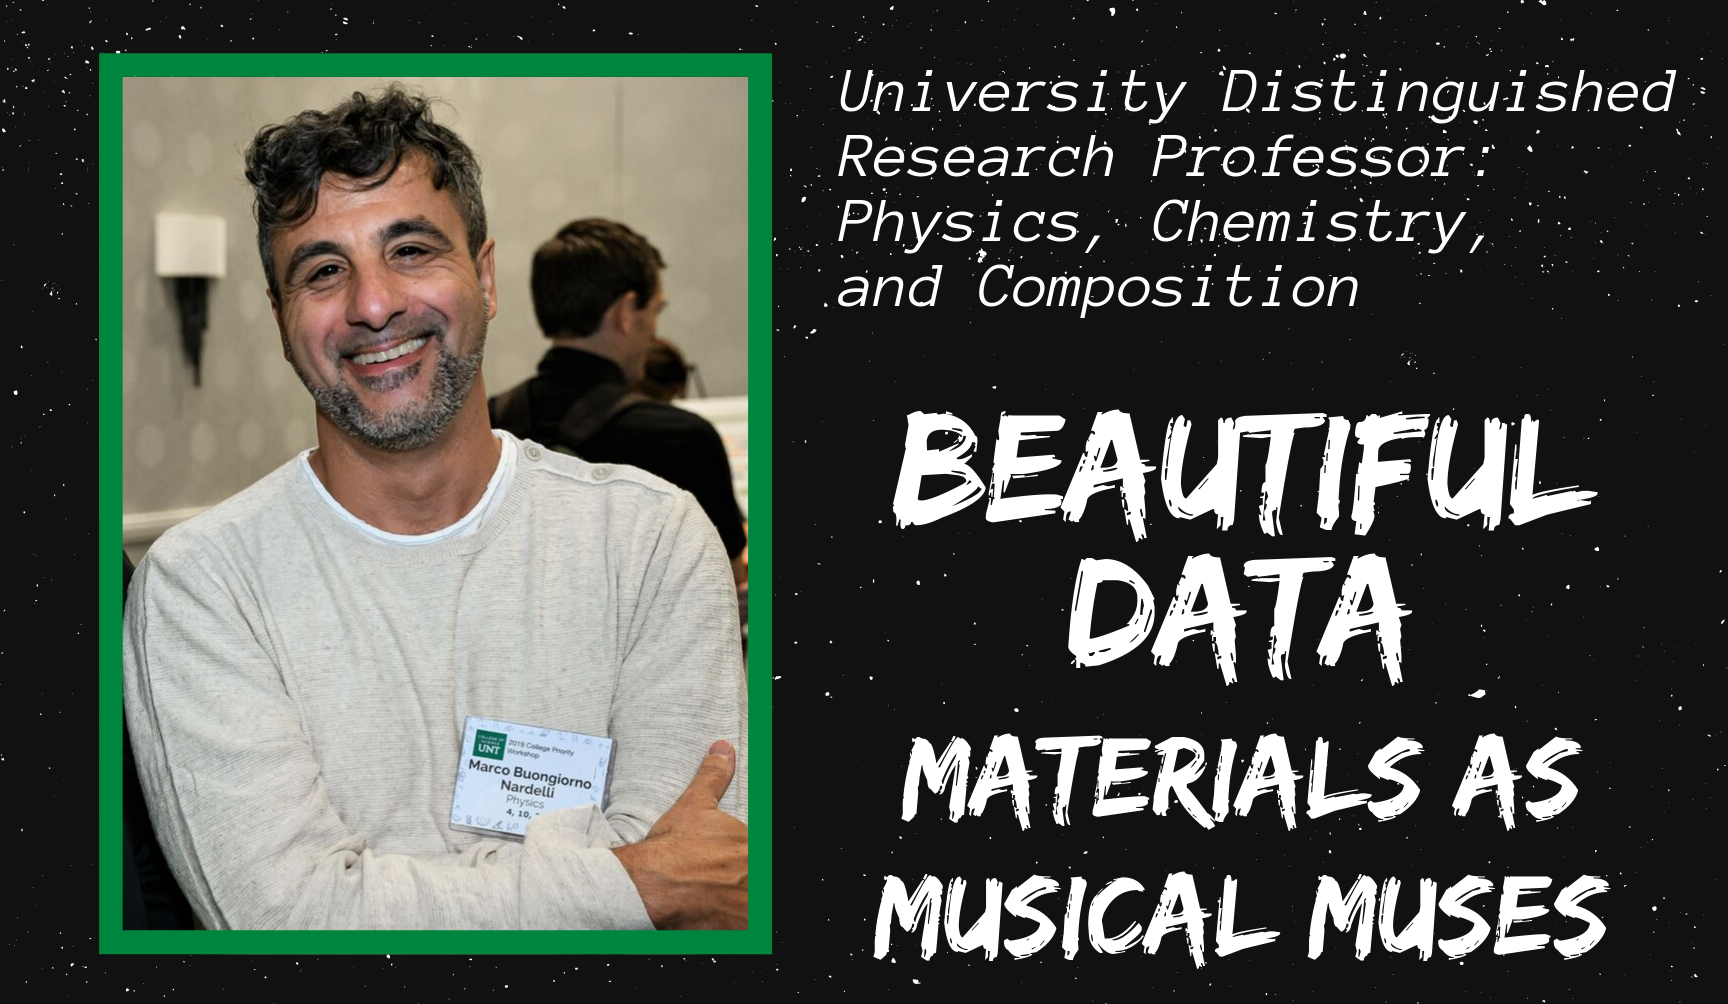 Beautiful Data: Materials as Musical Muses - UNT Fall SMART Talk to feature prominent artist and physicist